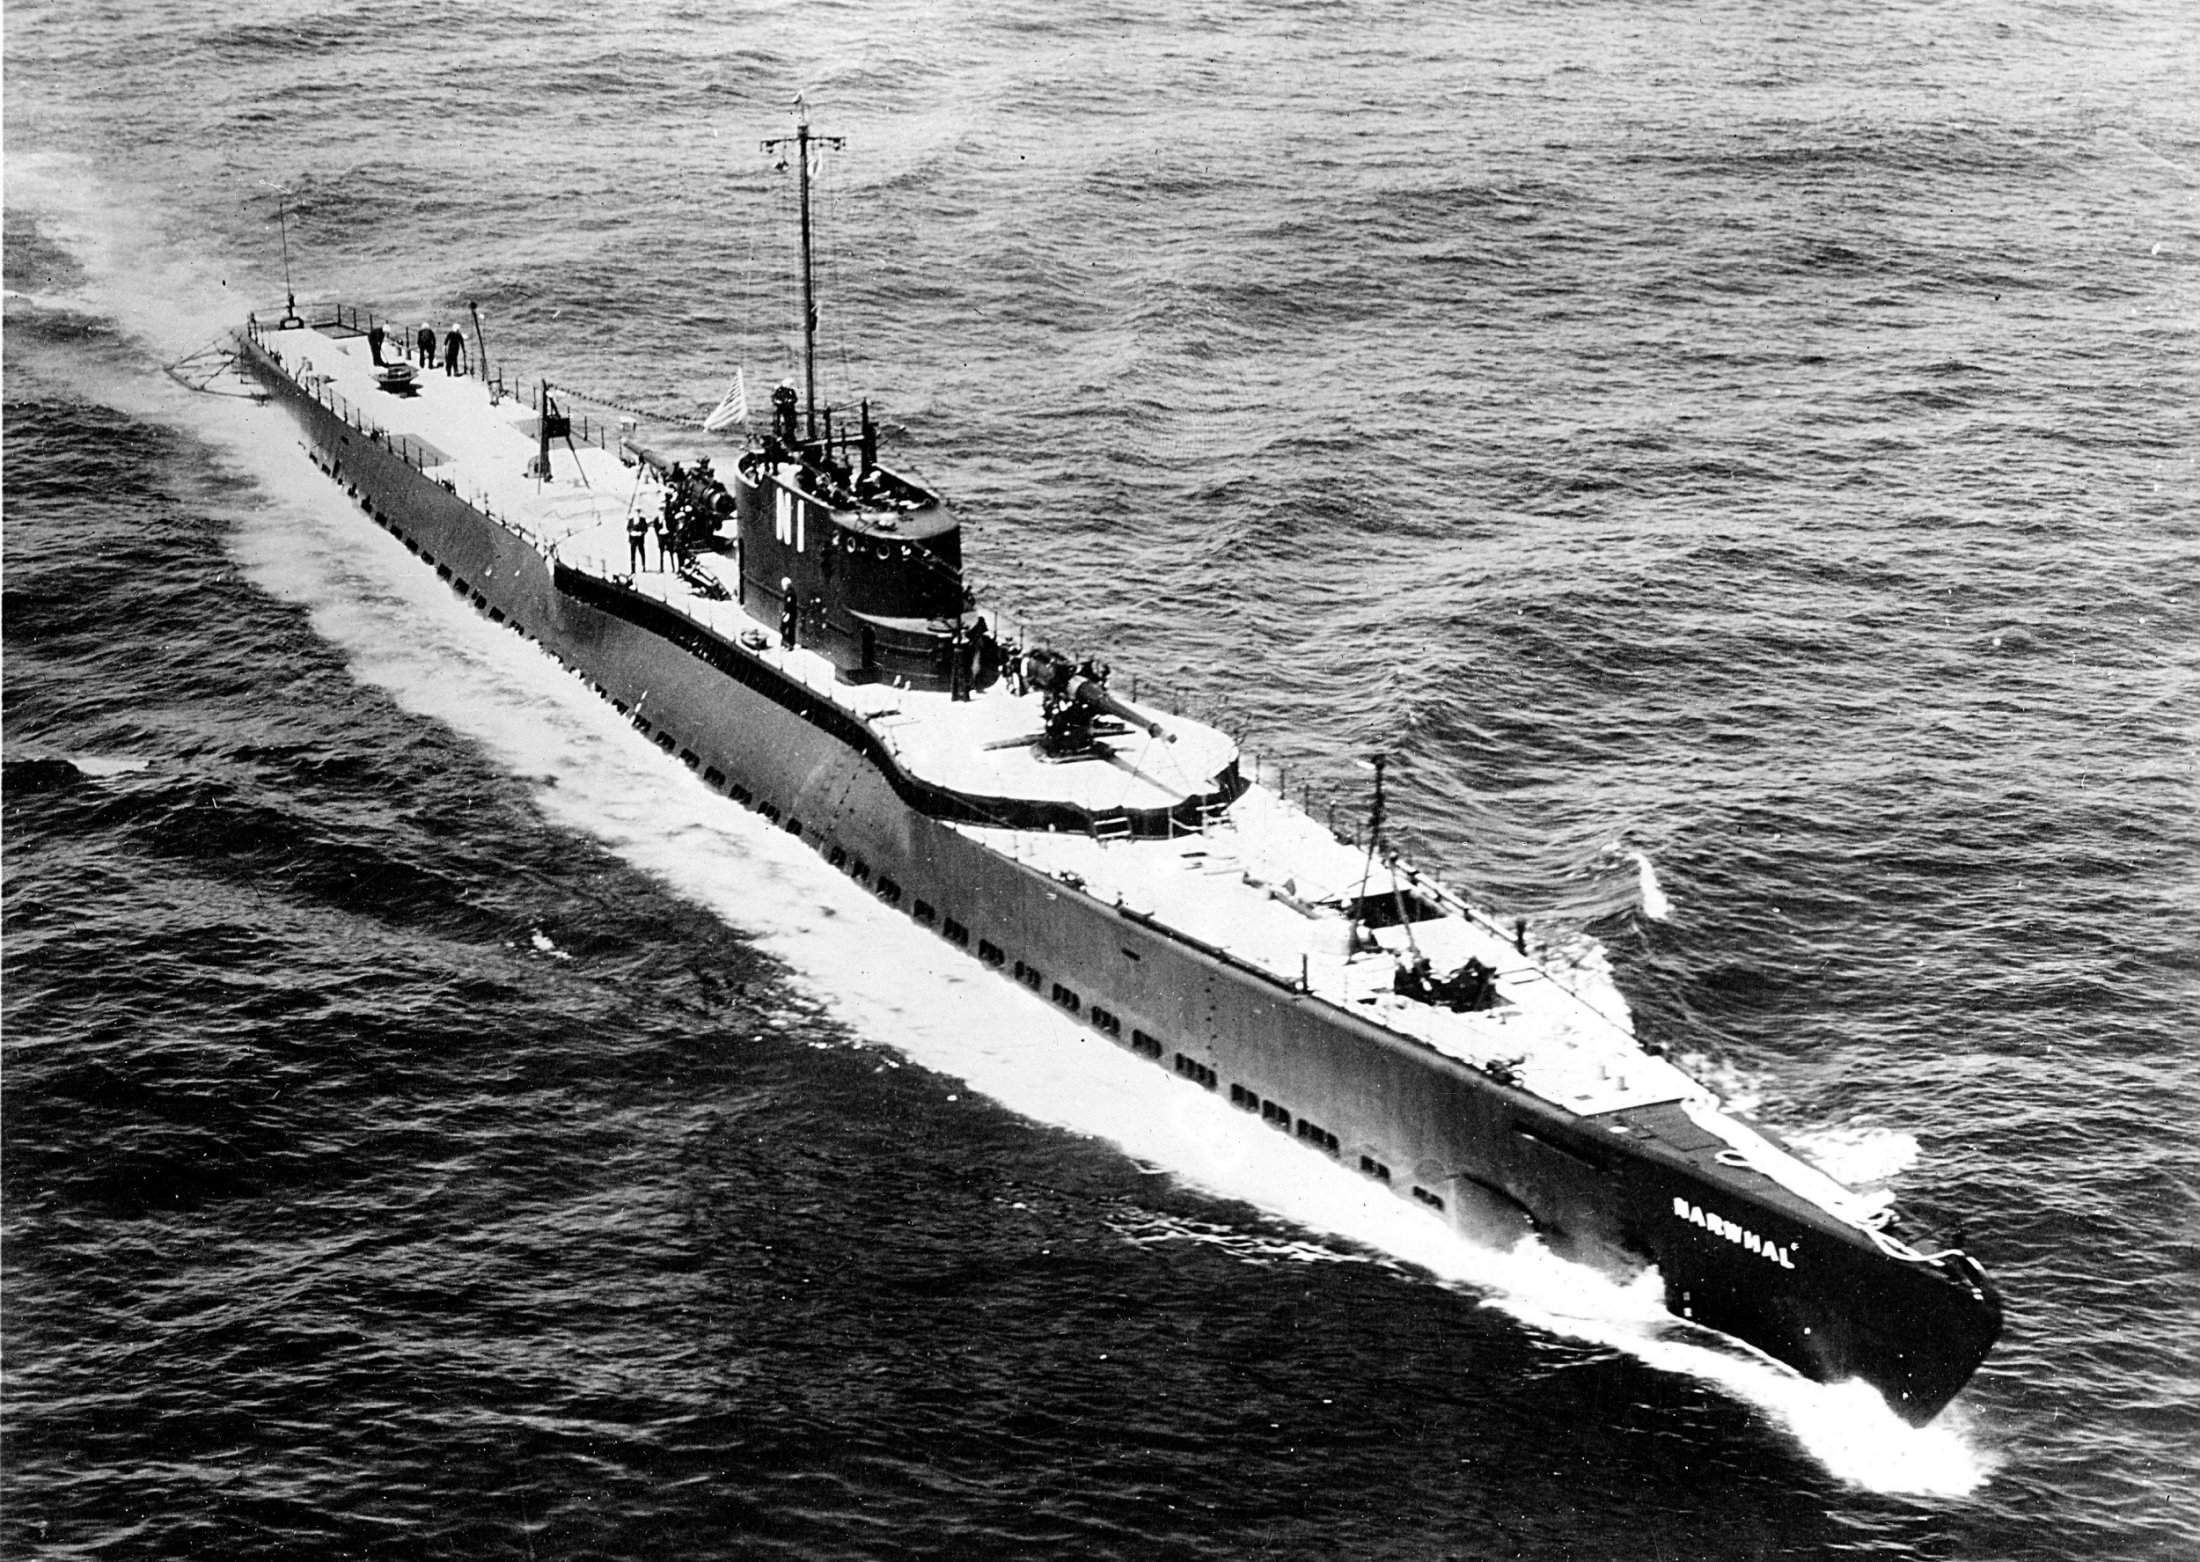 Sub Early S Photo Of The Narwahl Ss 167 She Was One Of Two Sub Sub Crusier